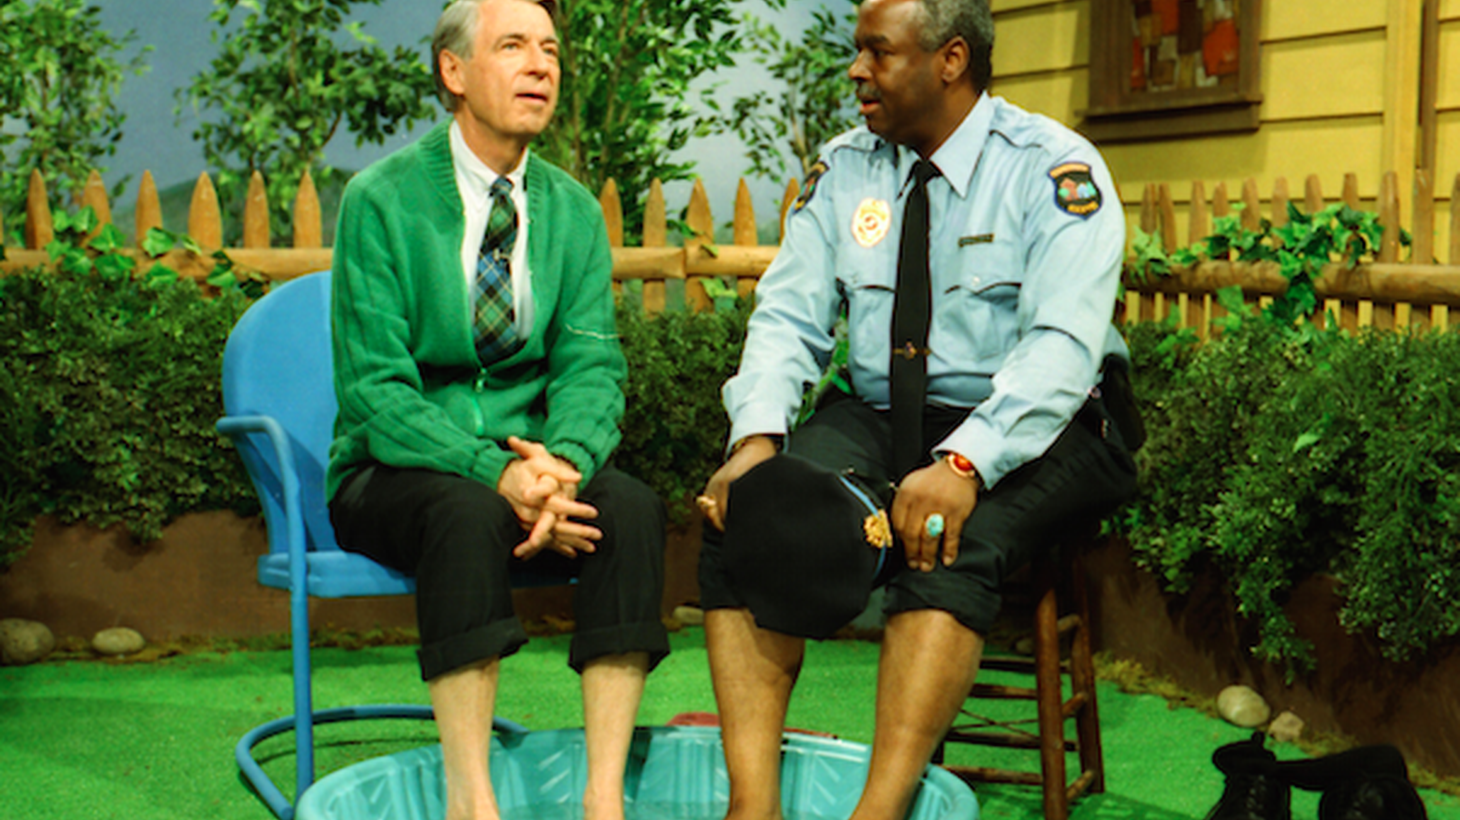 """This year marks the 50th anniversary of the debut of """"Mister Rogers' Neighborhood."""" A new documentary explores the impact Mister Rogers had on generations of children and adults."""